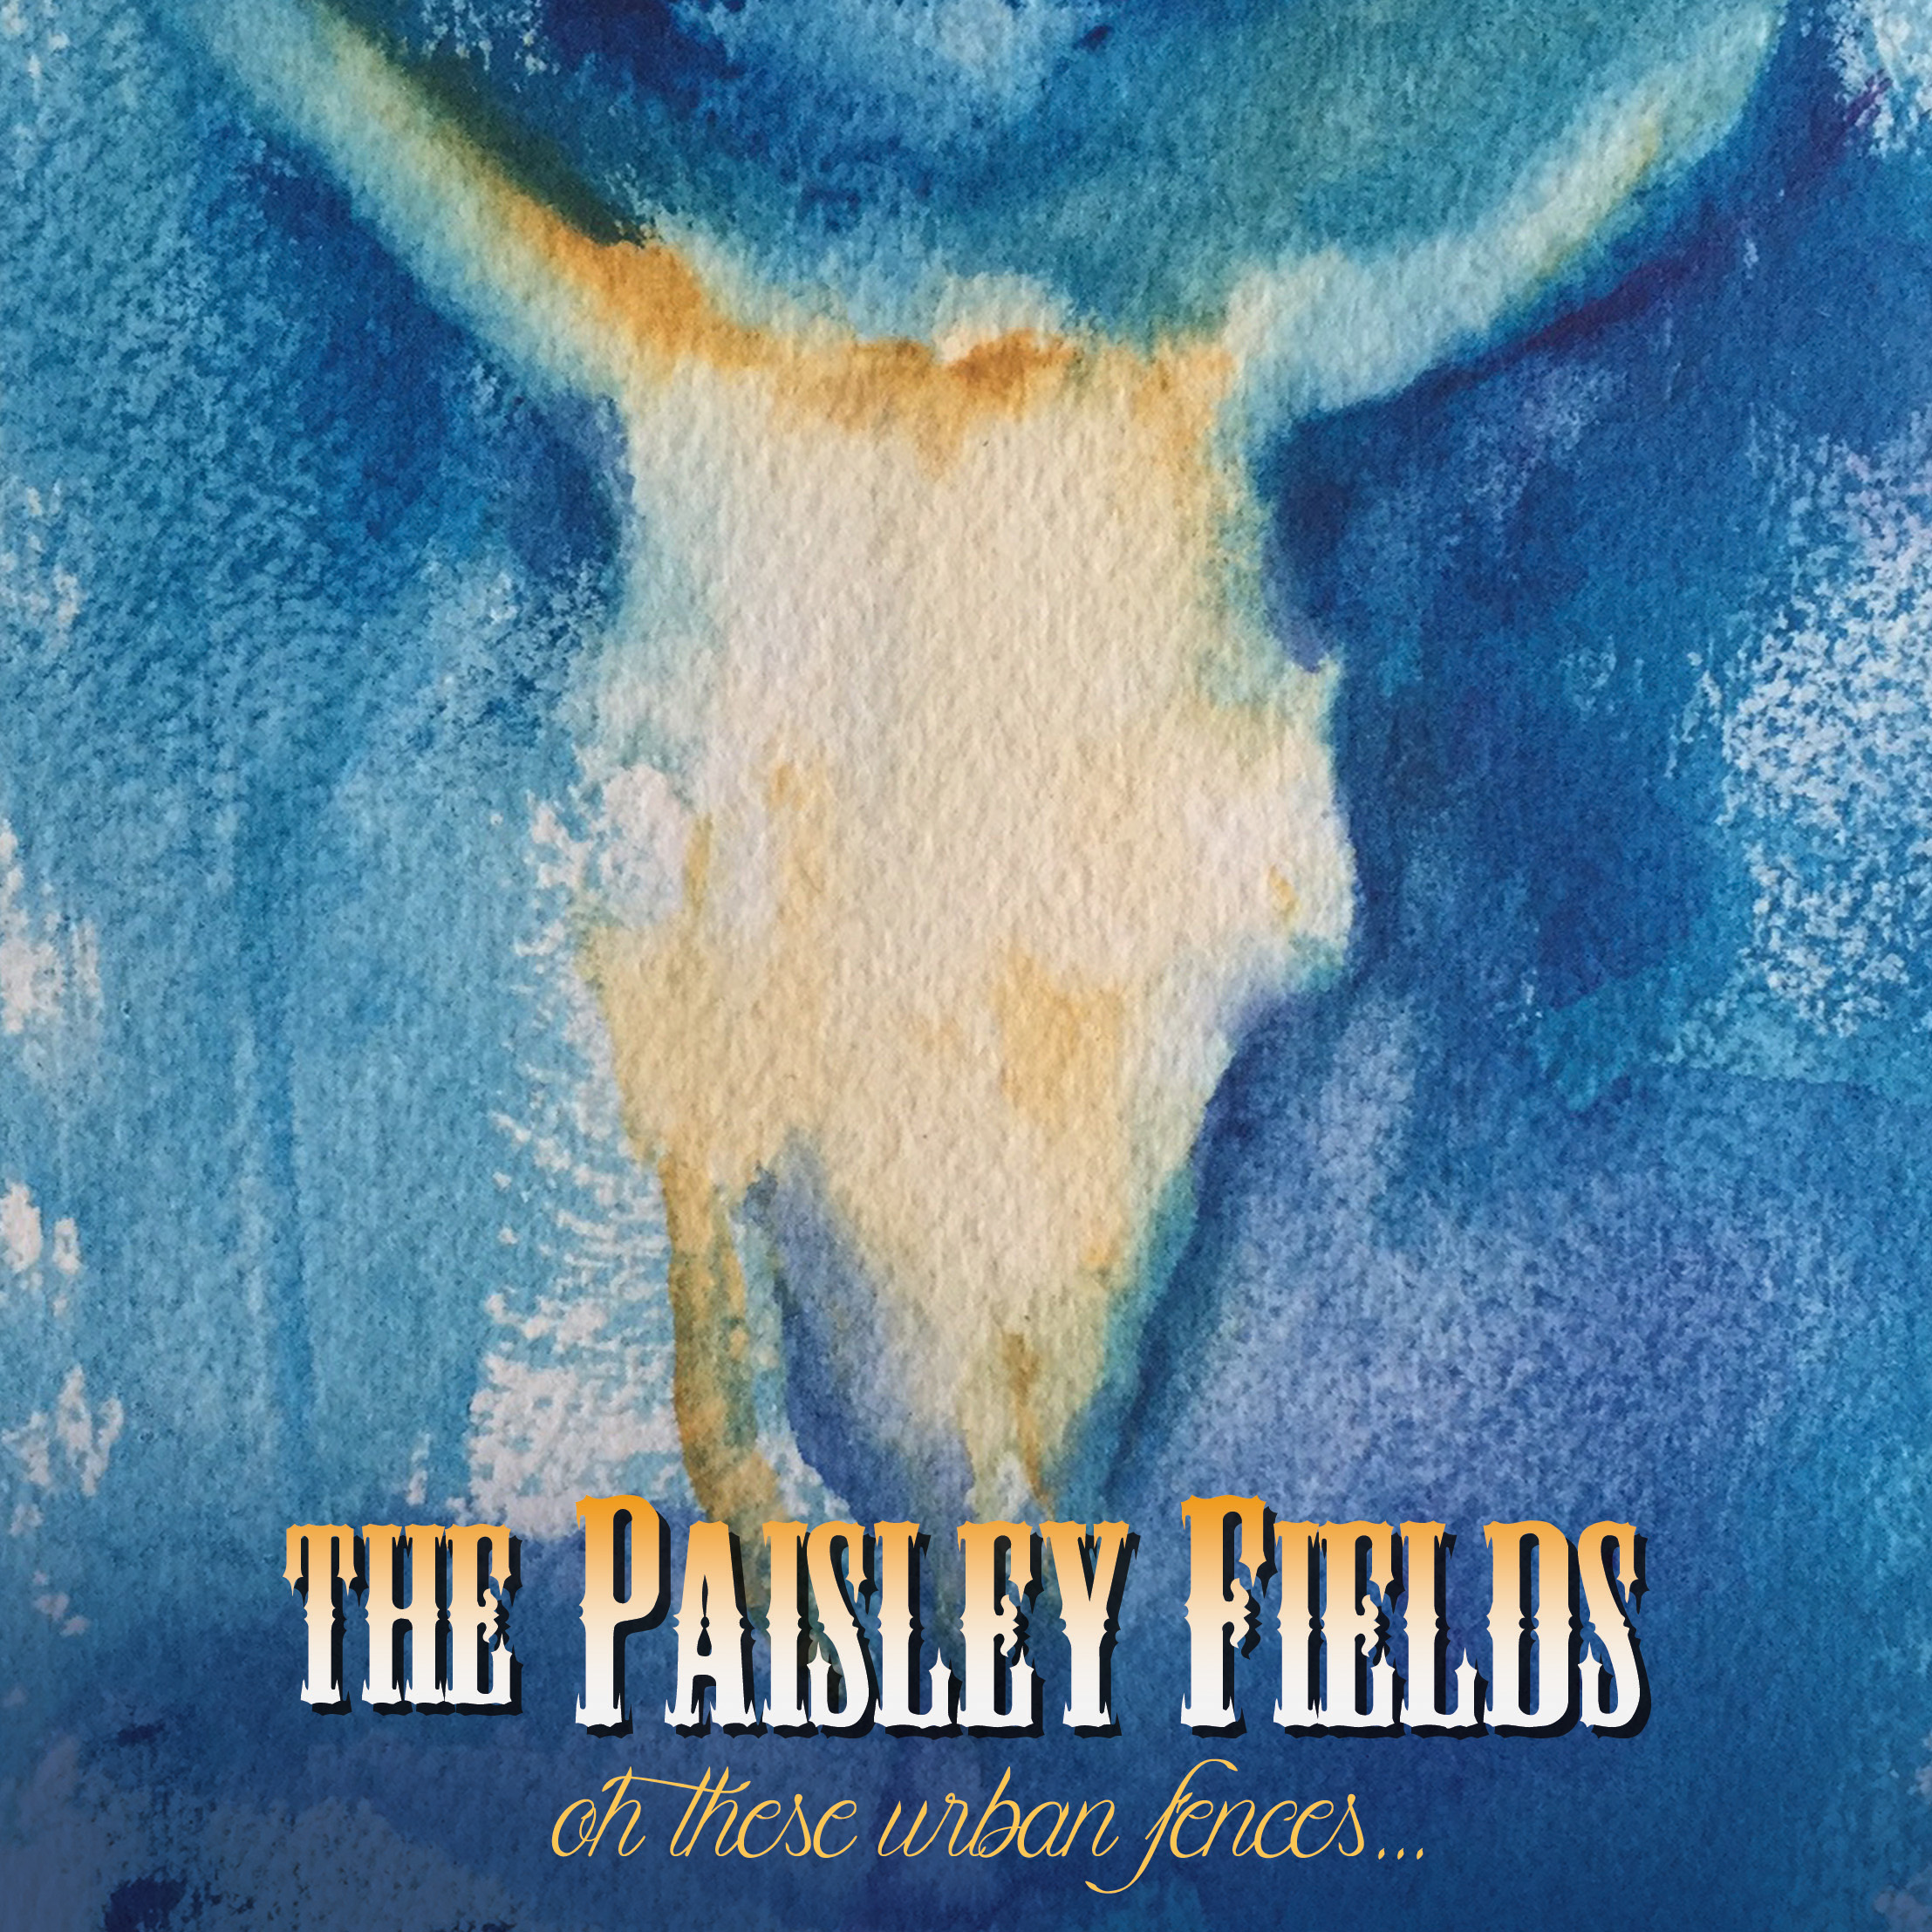 Cover art for The Paisley Fields  Oh These Urban Fences... by Julia McGinley. Design by Derek Bishop